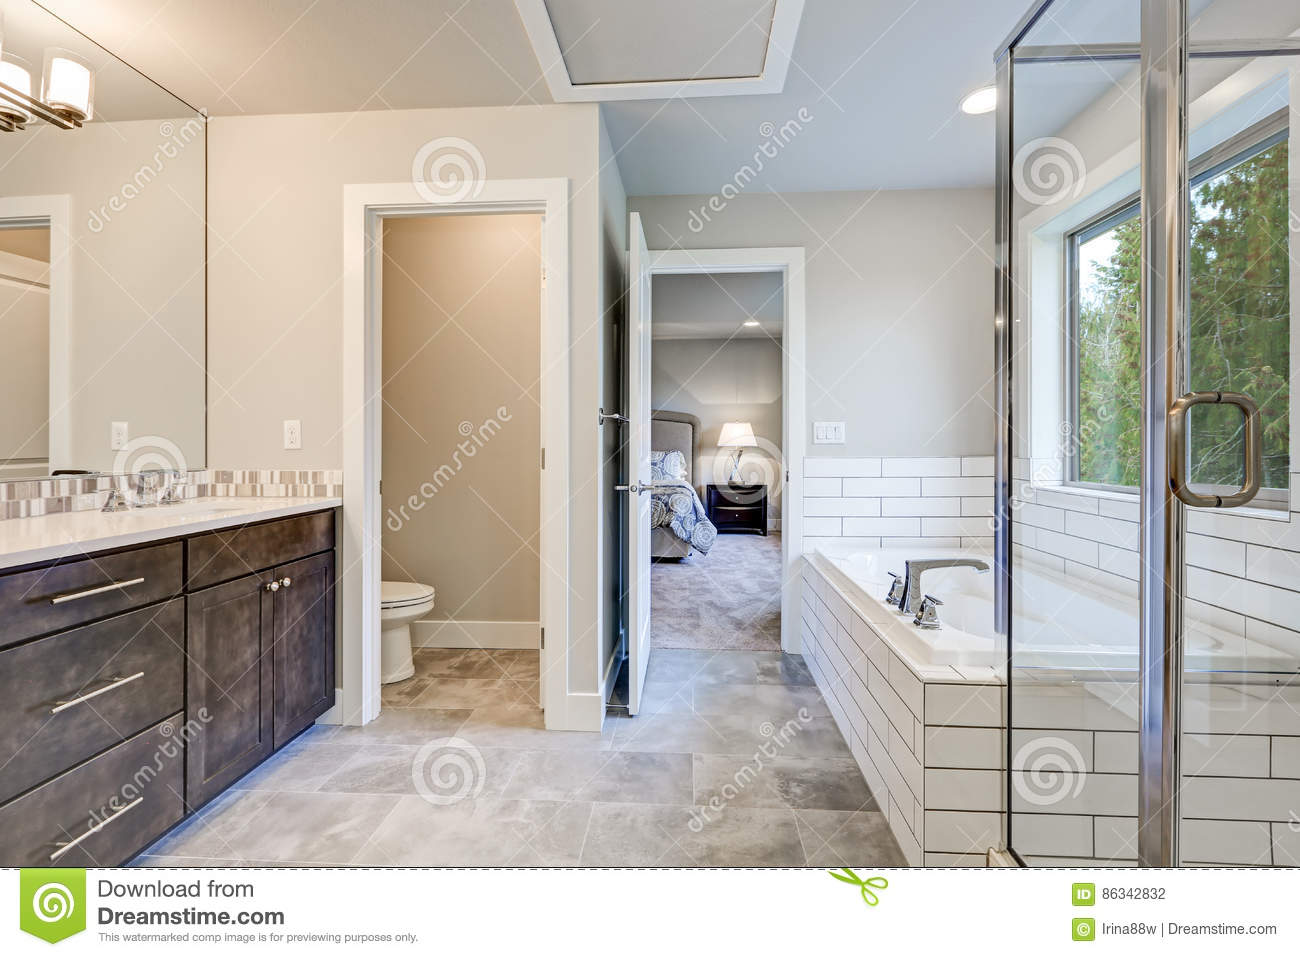 Gorgeous Bathroom Interior Boasts Drop In Tub Stock Photo Image Of Beautiful Door 86342832